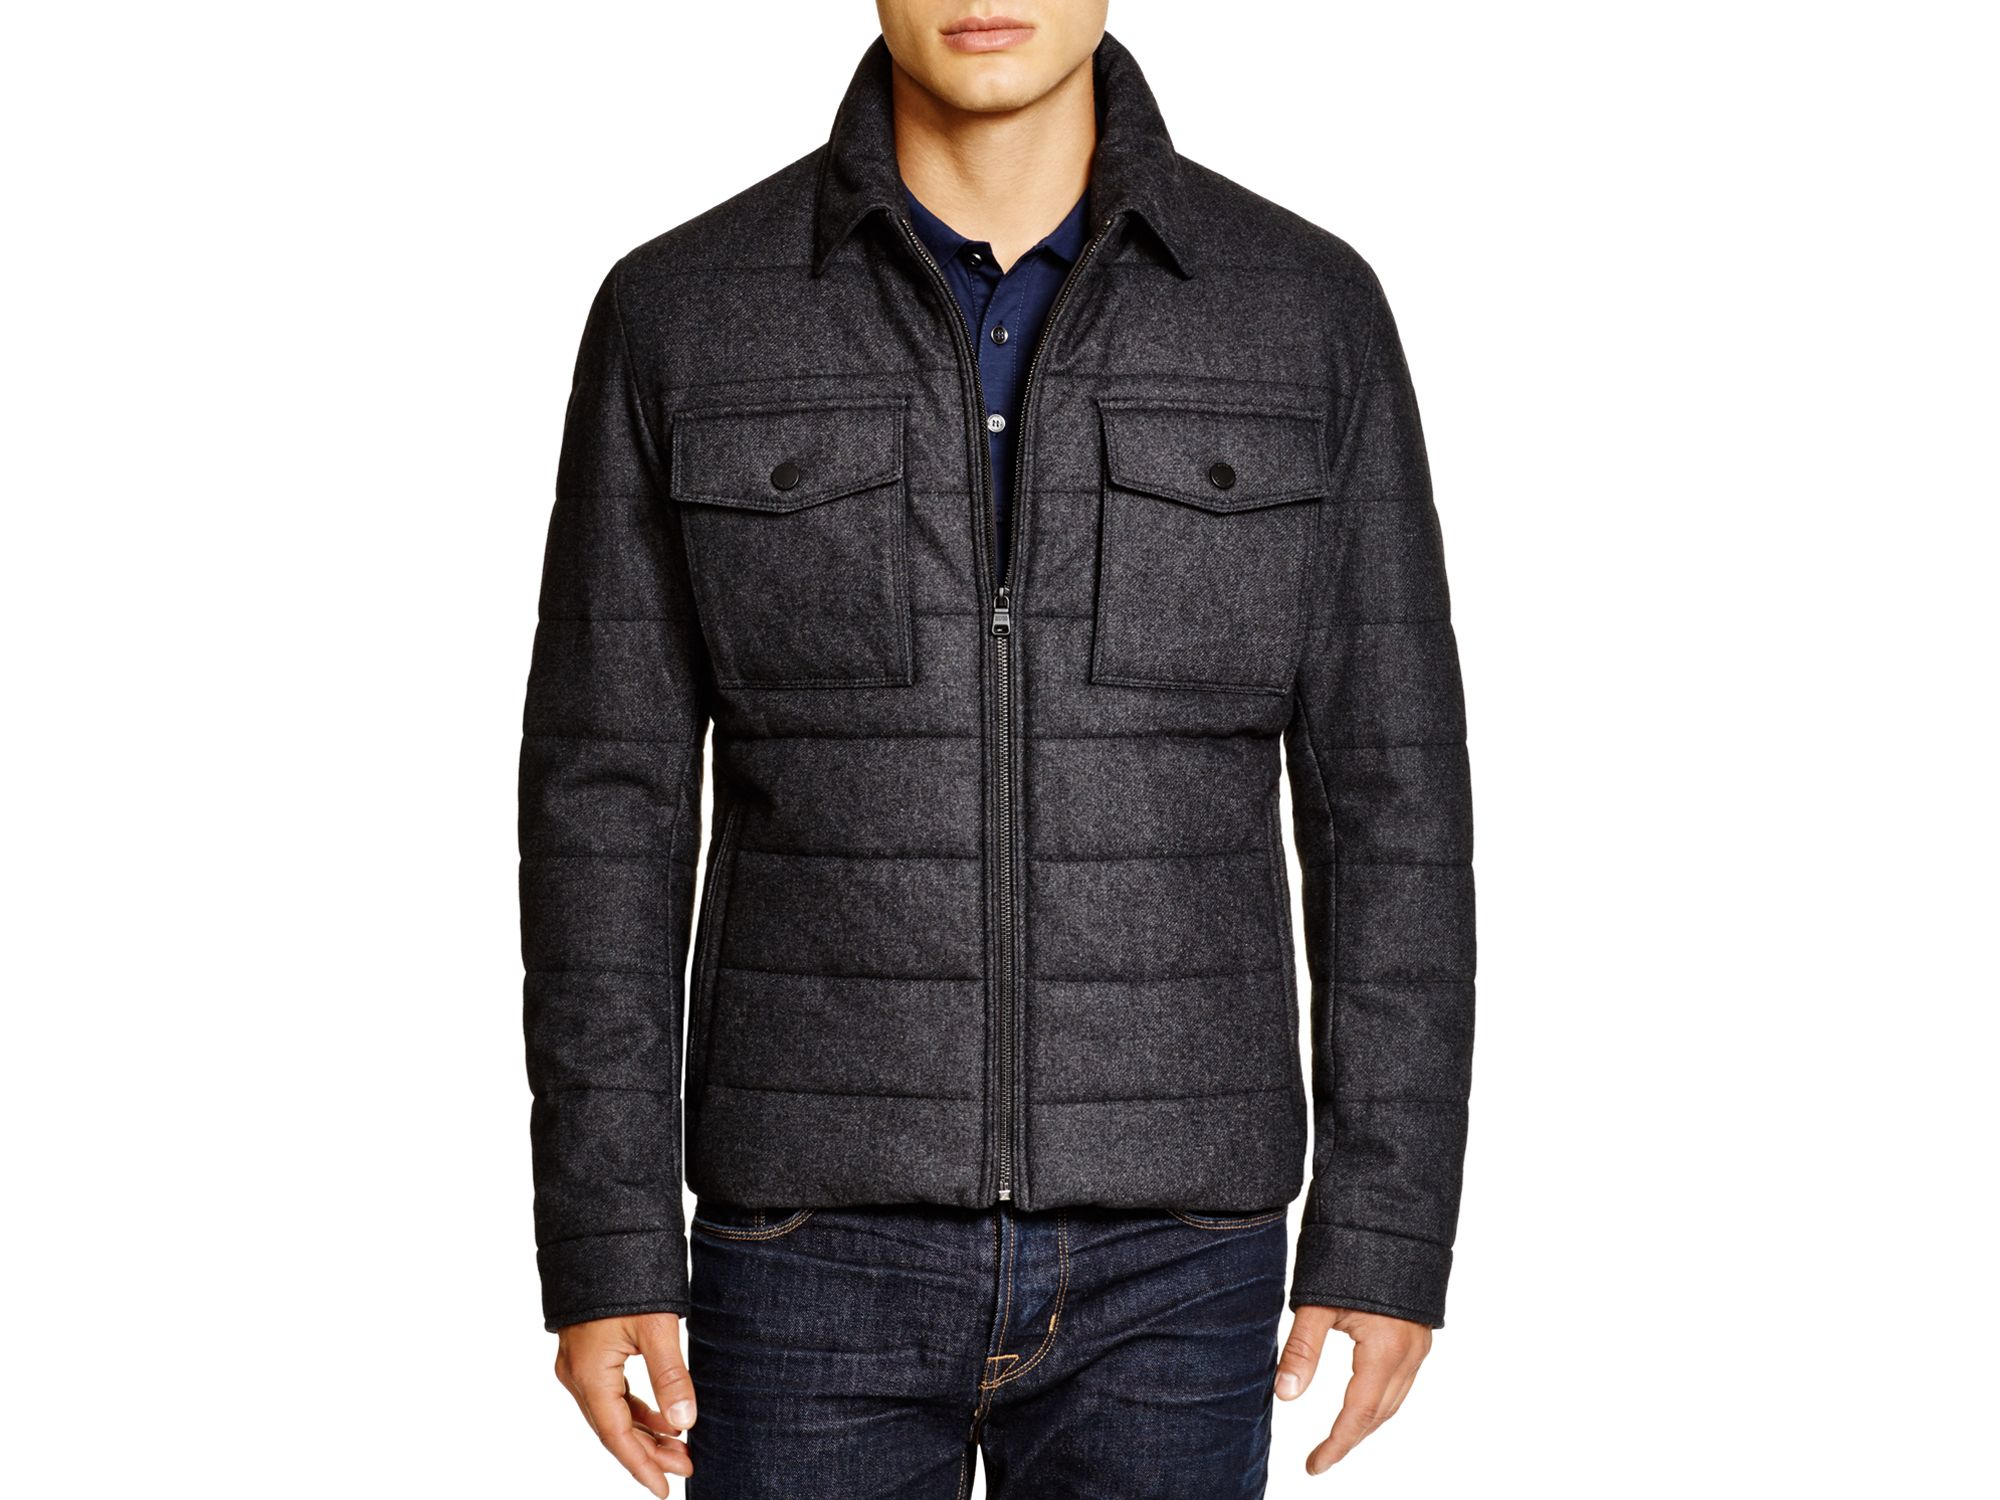 Canada Goose vest outlet authentic - Boss Cormac Wool Puffer Jacket - Bloomingdale's Exclusive in Gray ...